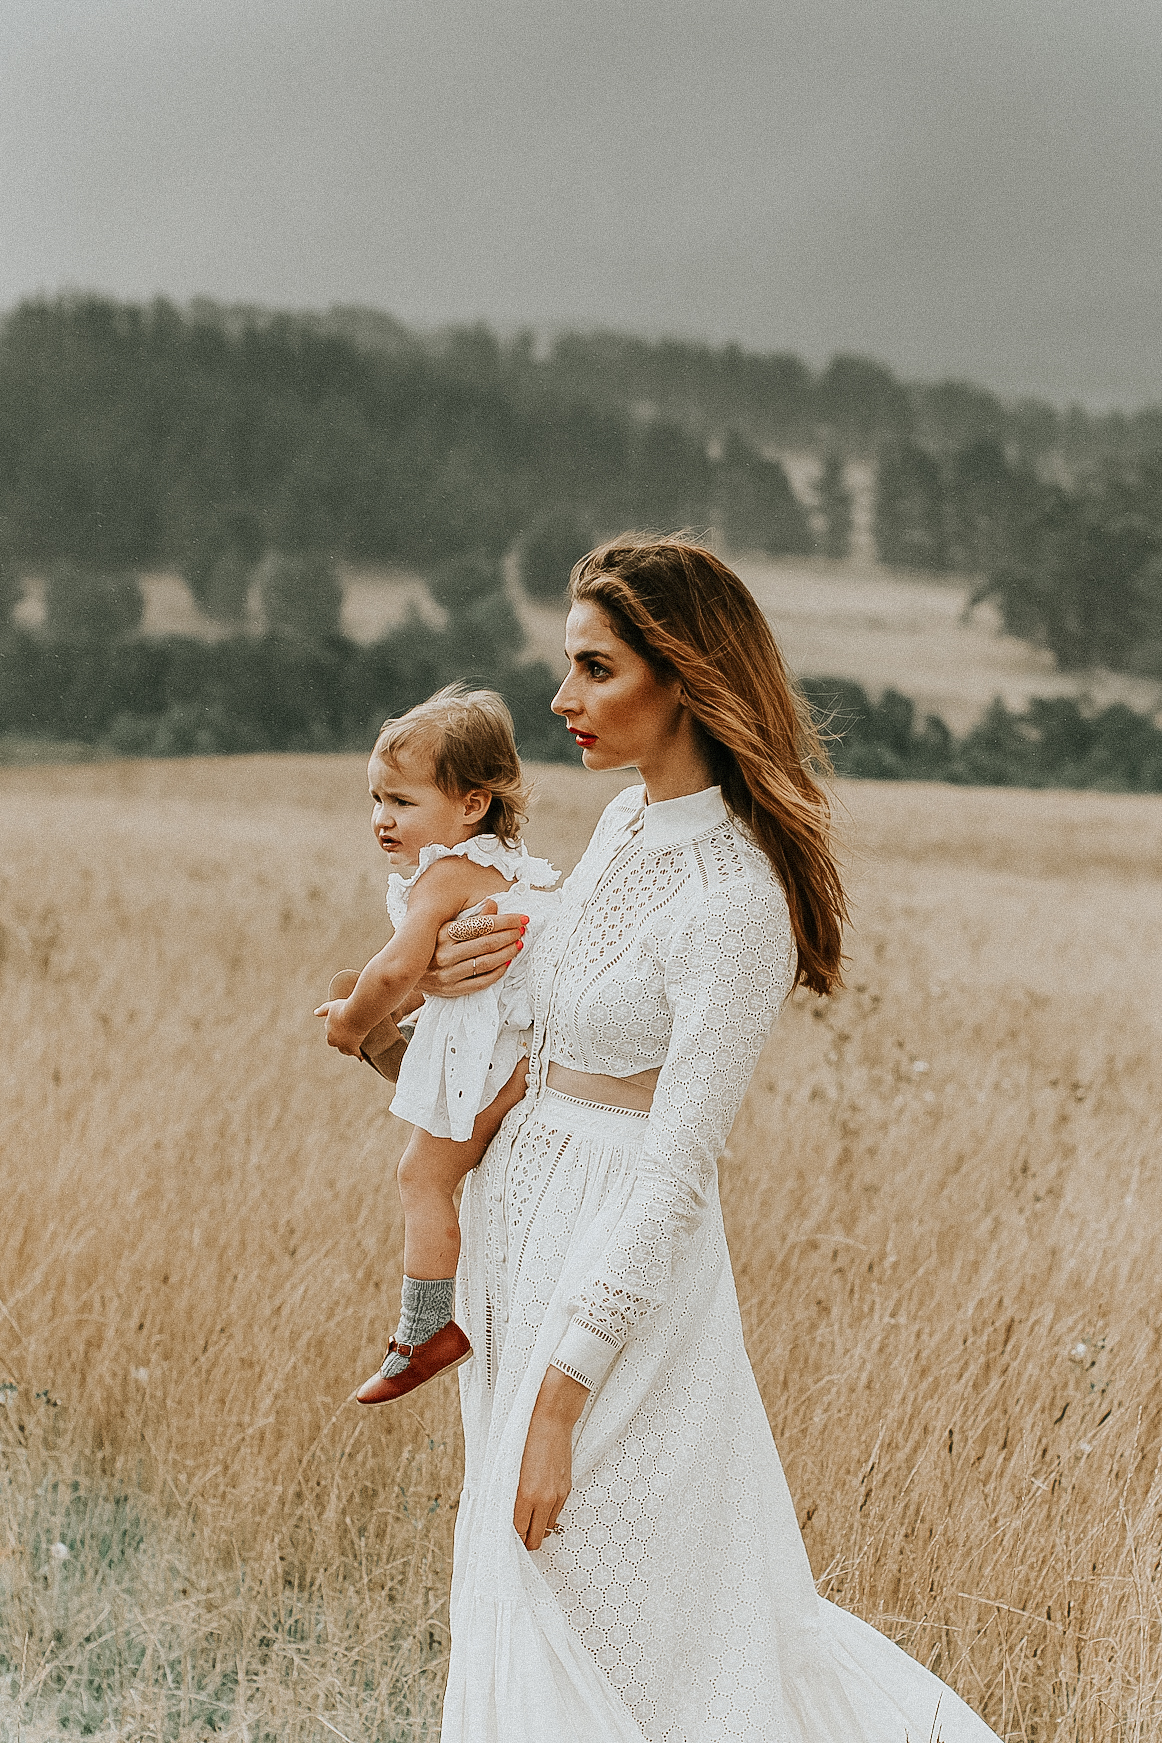 A Family Affair-Musings by a Muse